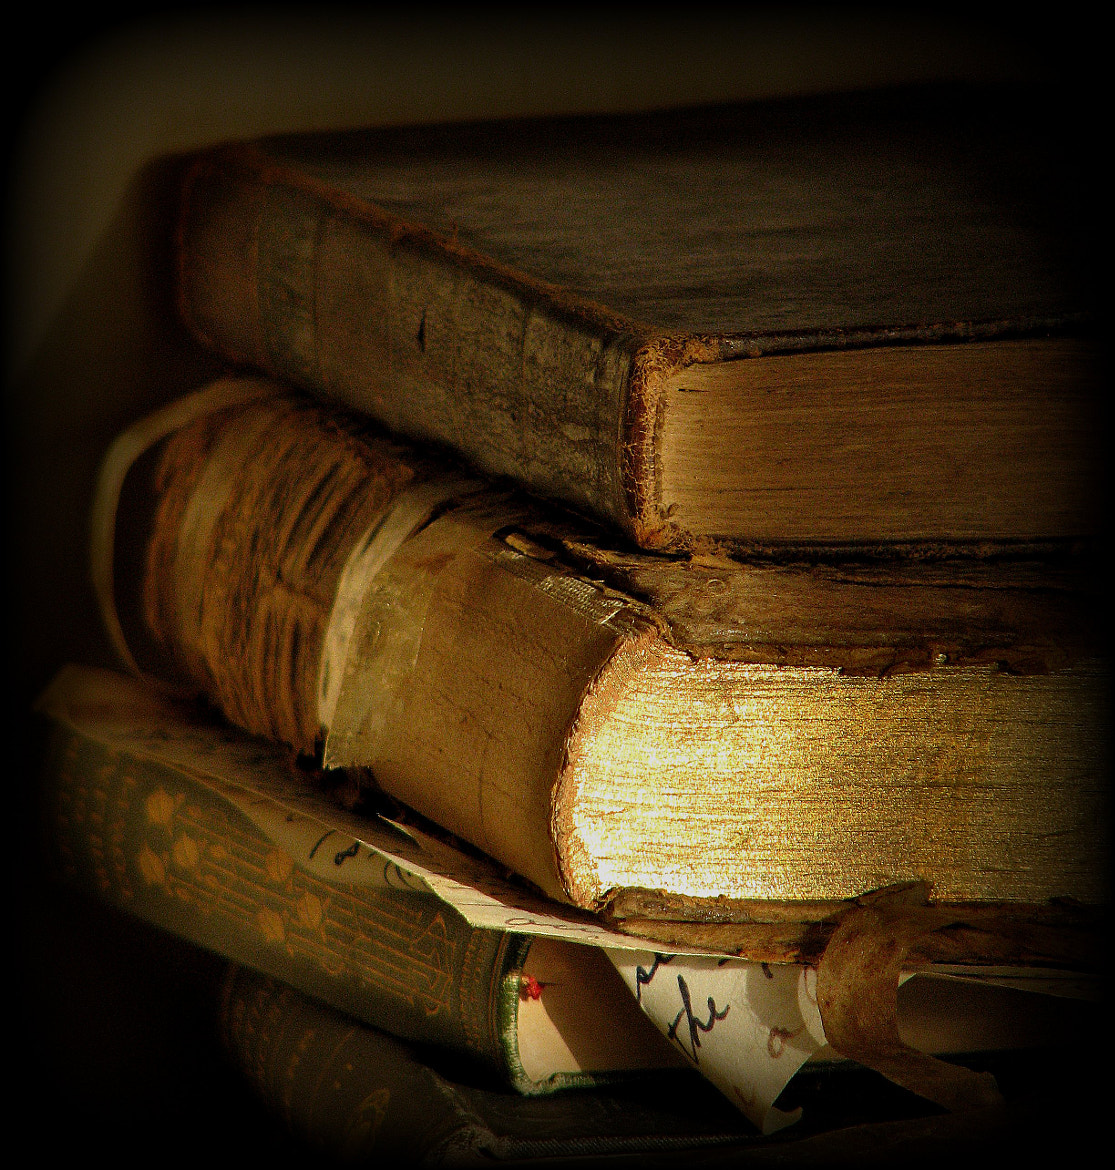 Photograph Treasured Books by Ruthanne Annaloro on 500px